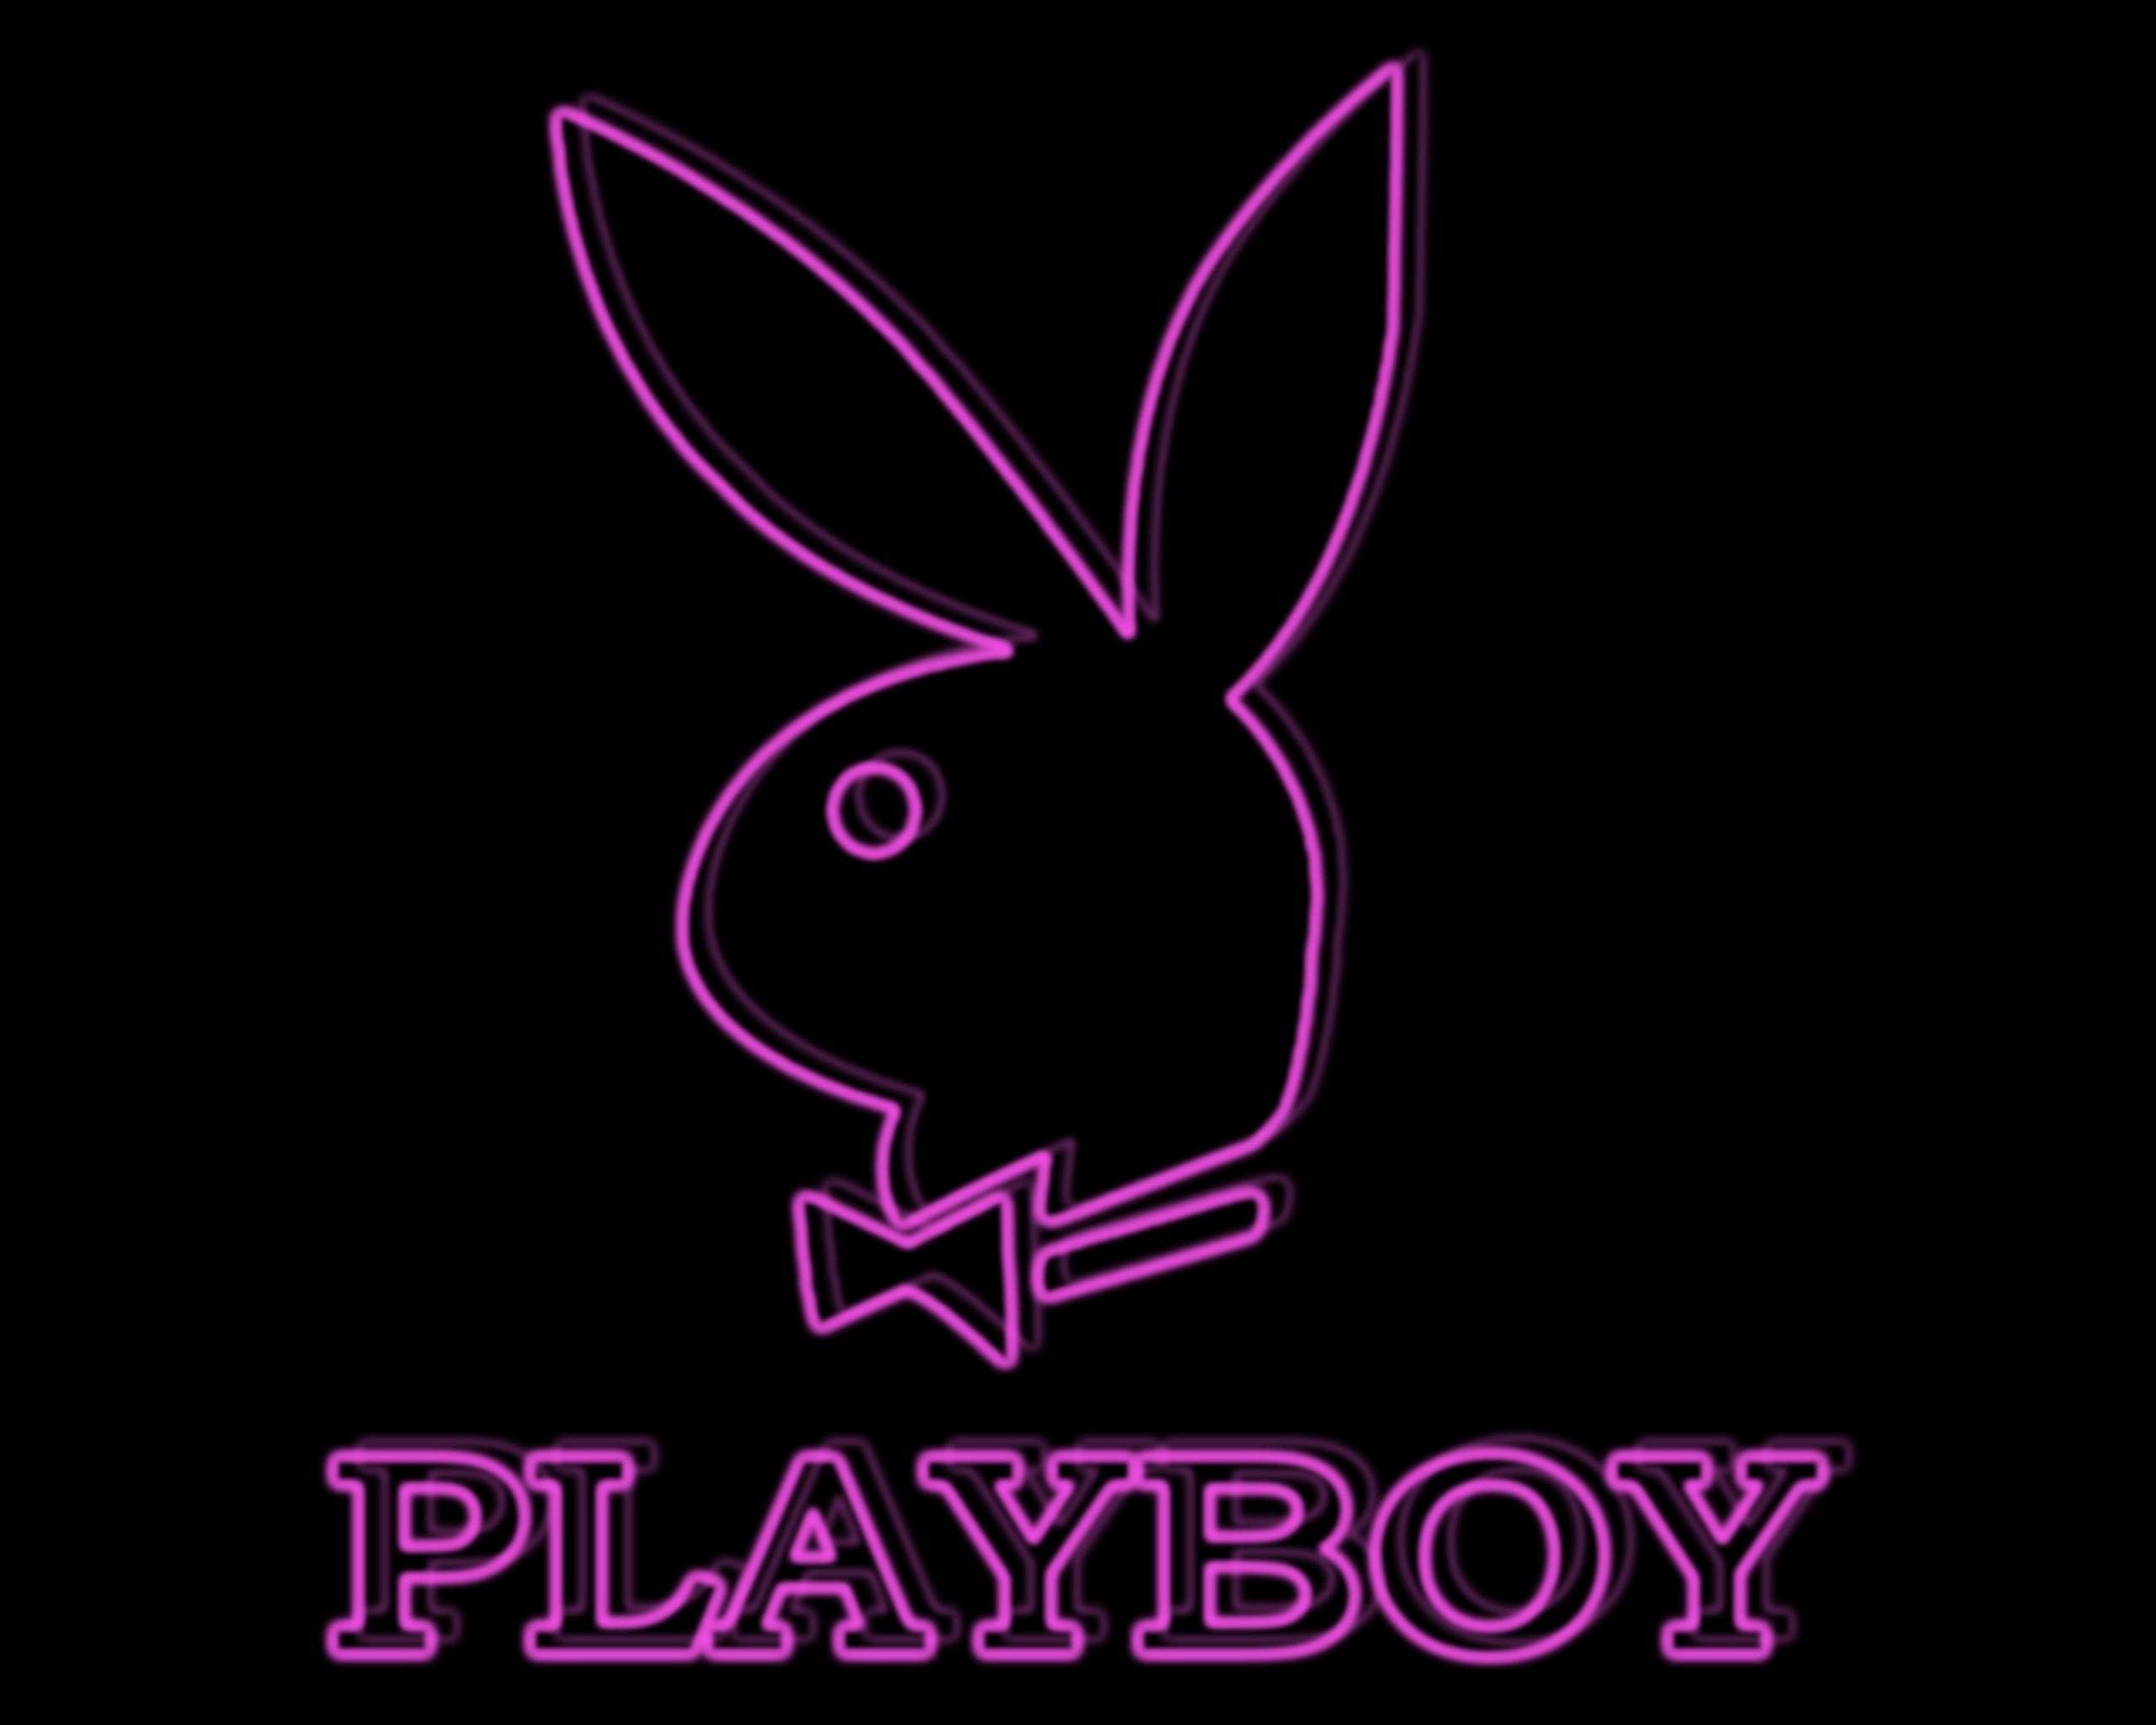 Playboy wallpapers wallpaperup playboy adult logo poster 1 wallpaper voltagebd Image collections